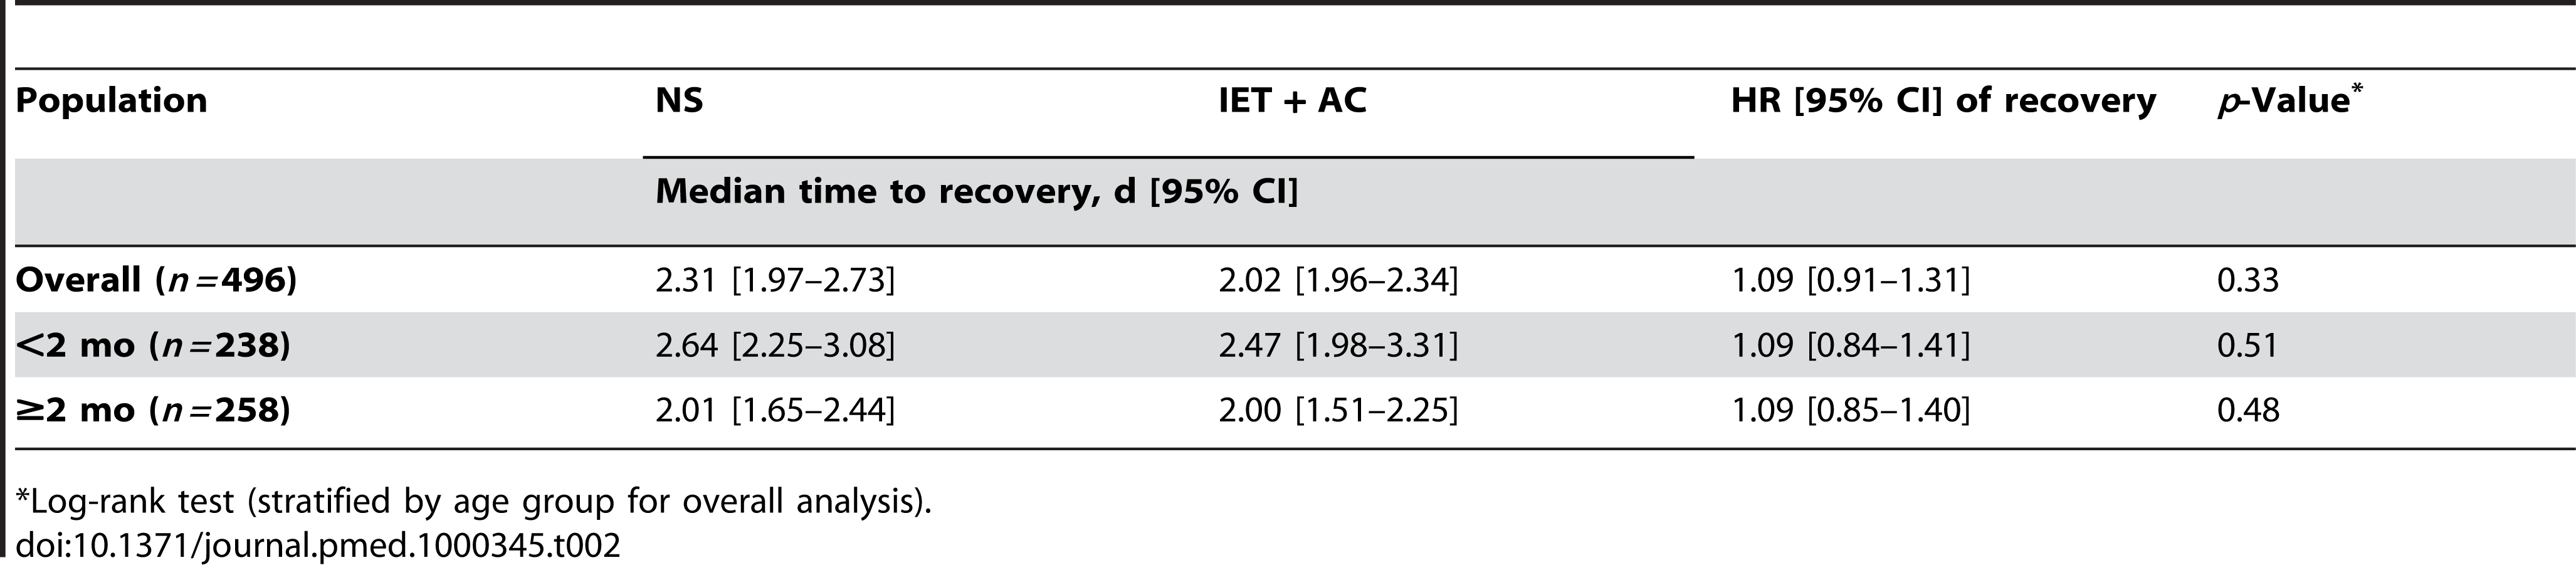 Estimated effect of increased exhalation technique on time to recovery (d) as a function of age (univariate analyses).